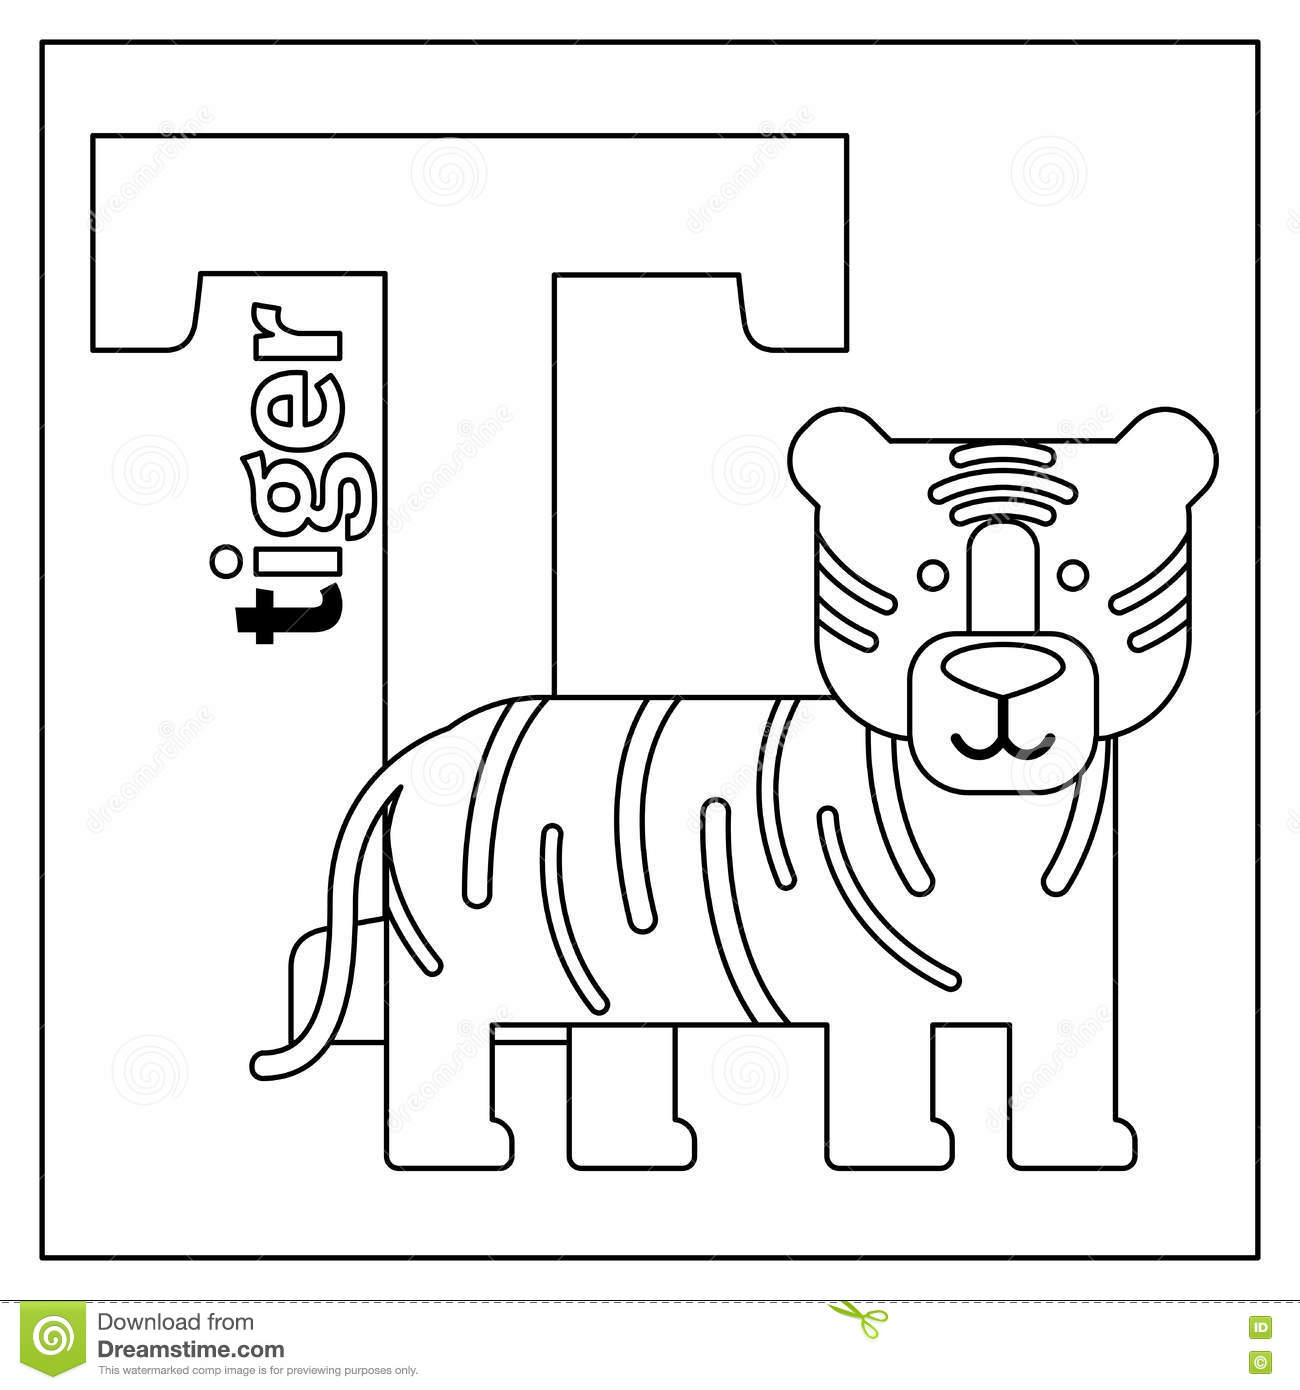 Letter t coloring pages - Alphabet Coloring Illustration Letter